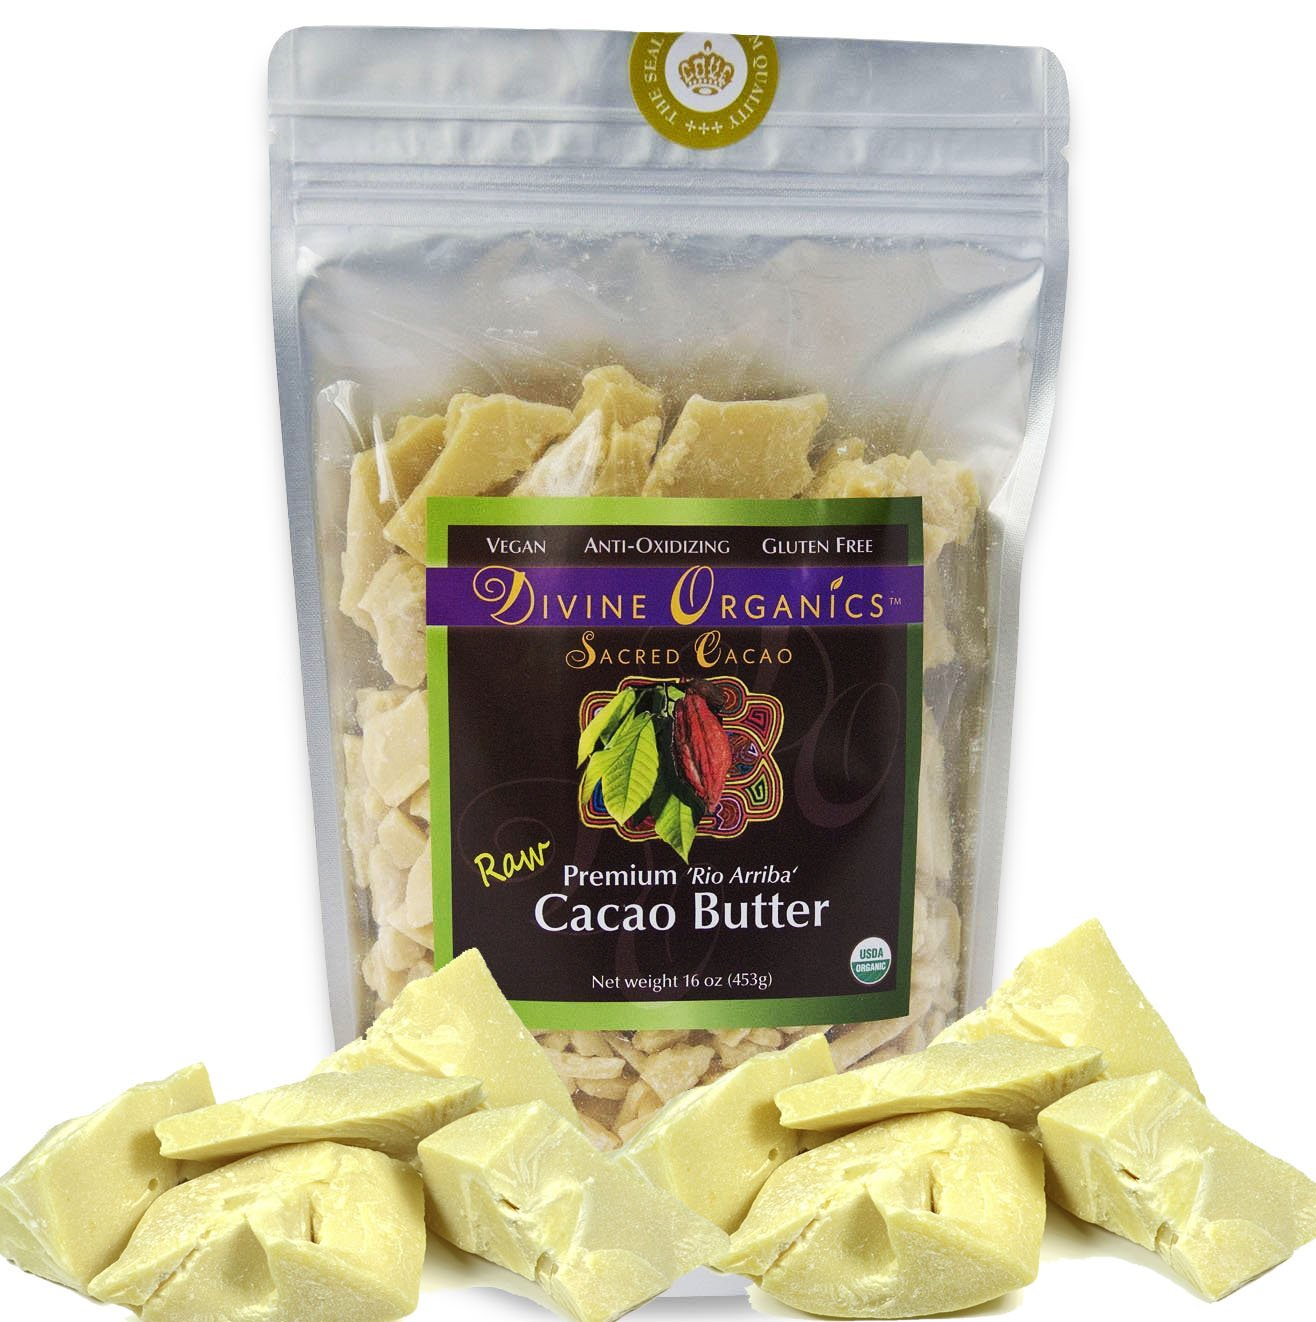 Divine Organics Raw Cacao Cocoa Butter - Certified Organic - Food Grade - Edible 16oz by Divine Organics (Image #1)